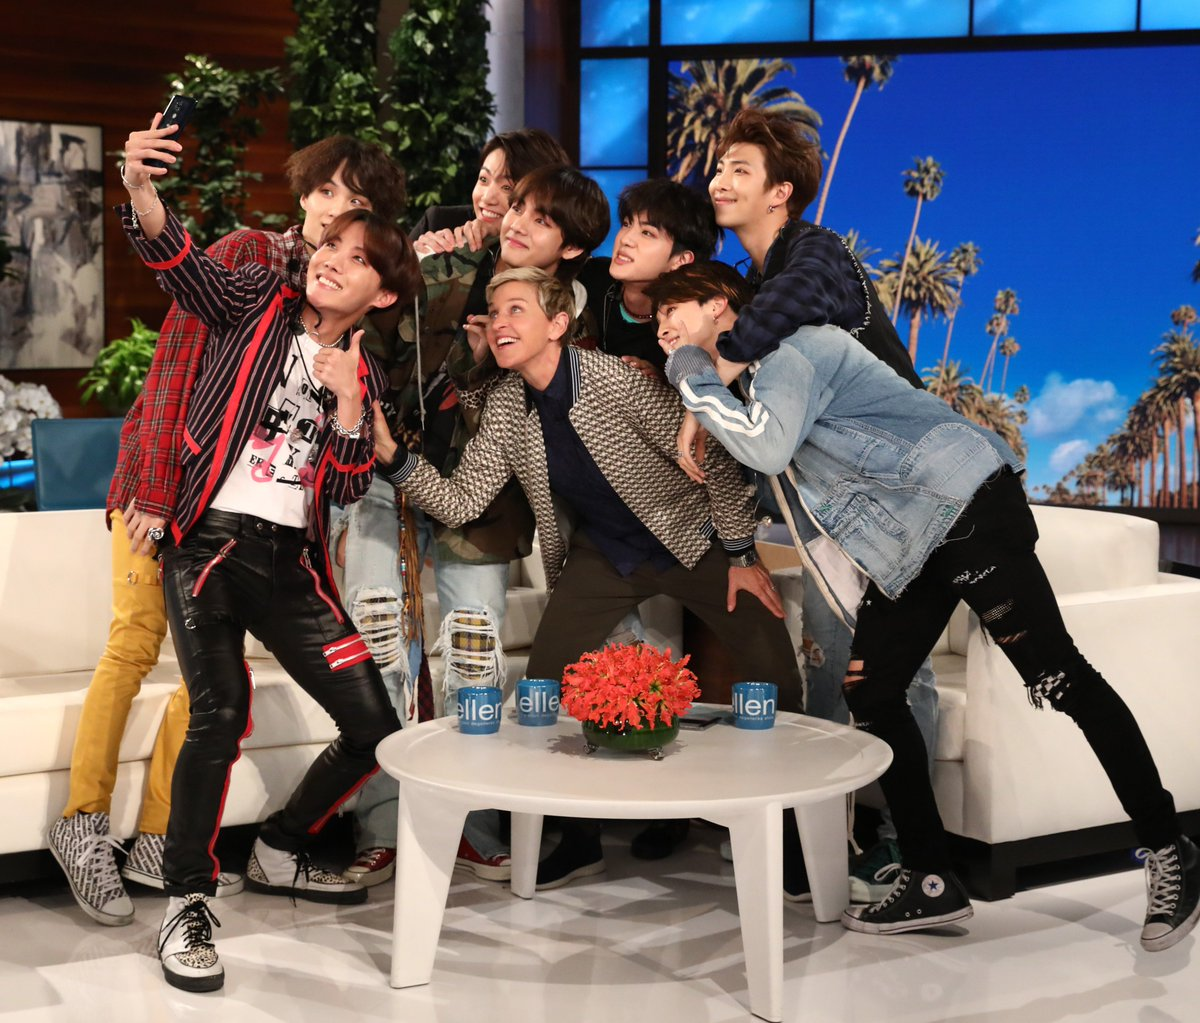 Guess who's here one week from today? @BTS_twt  #BTSxEllen #FakeLove